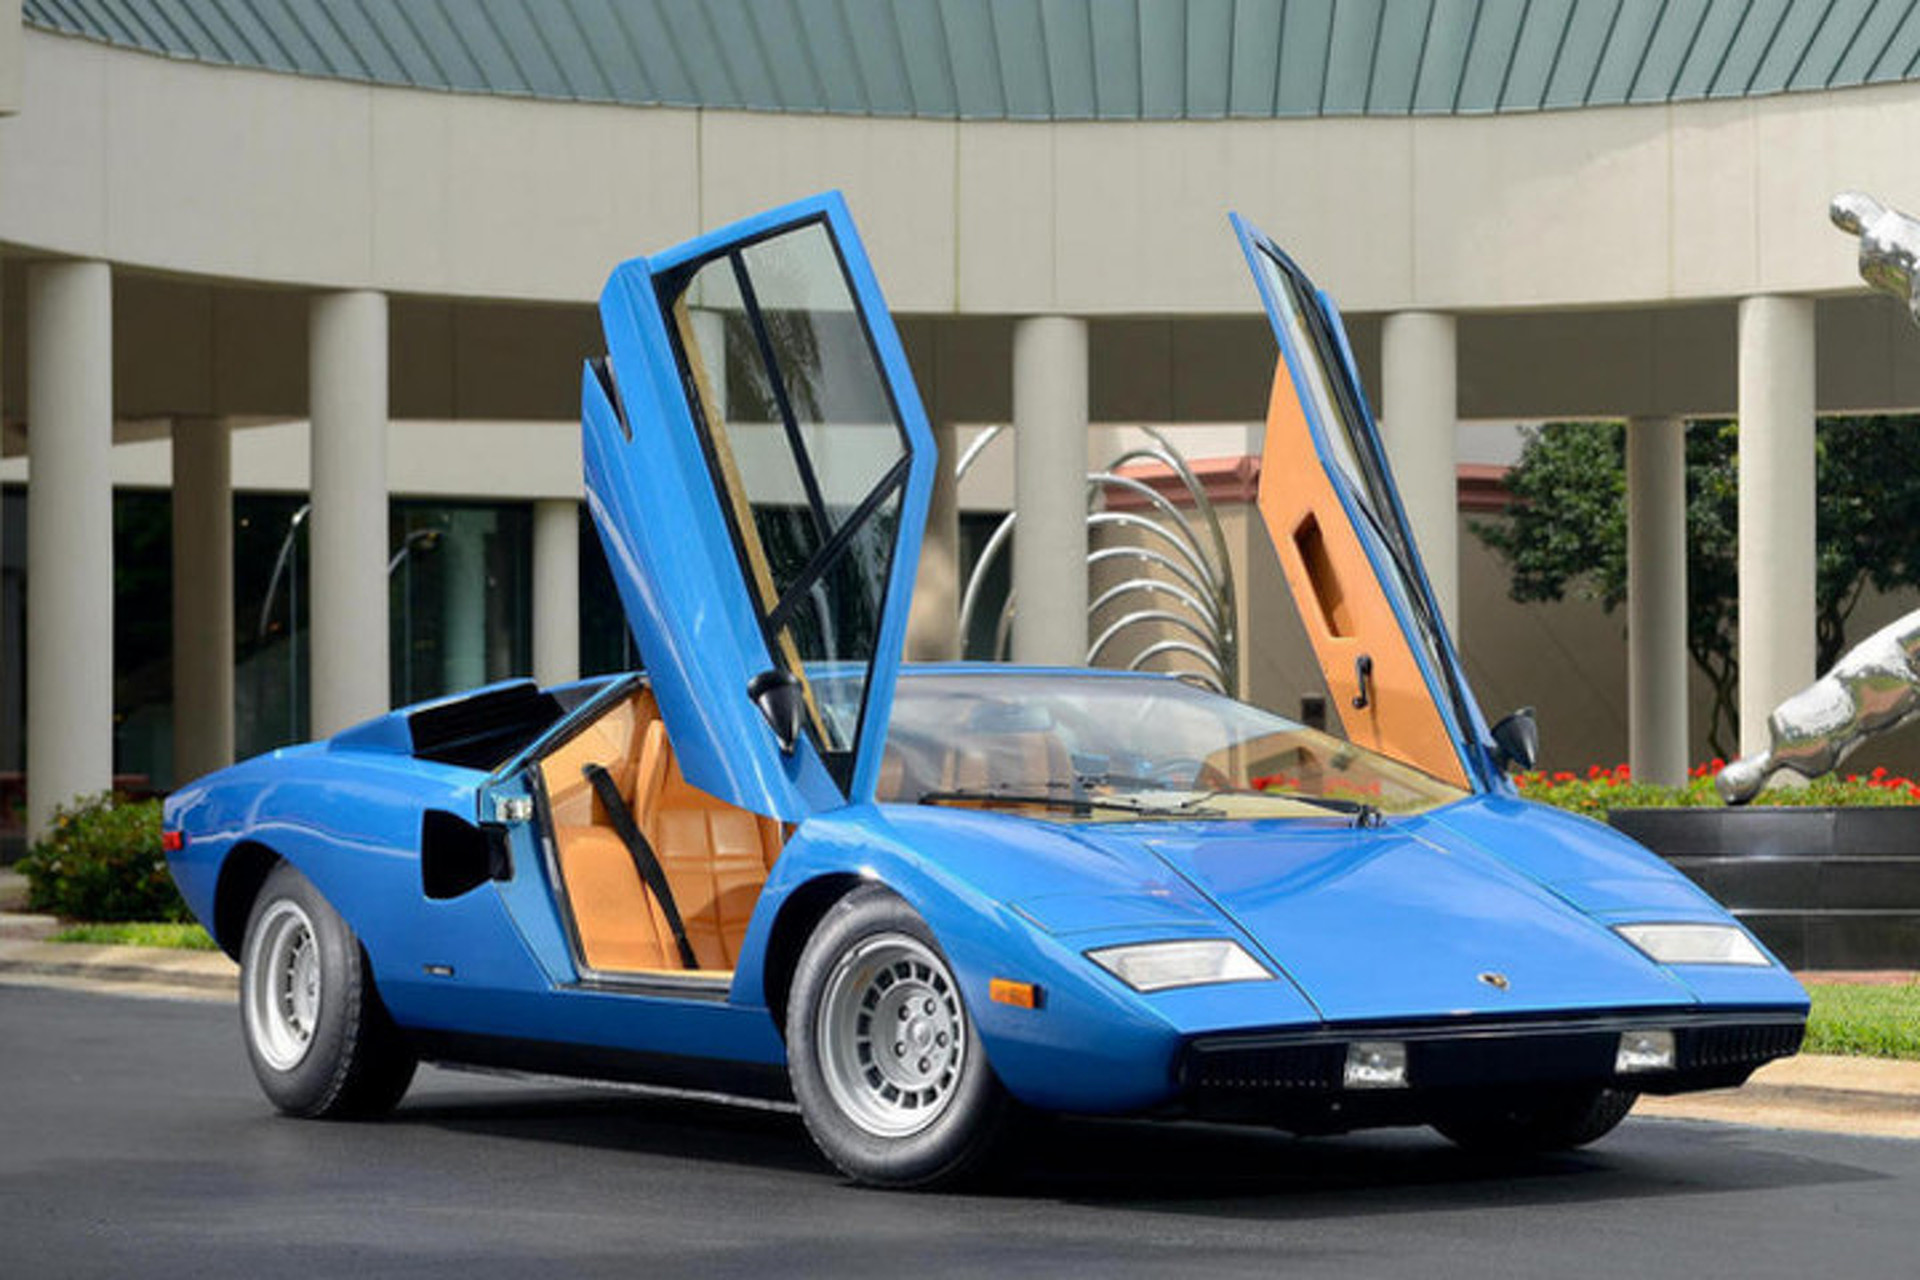 Lamborghini Countach Sells for Record $1.21 Million in Greenwich